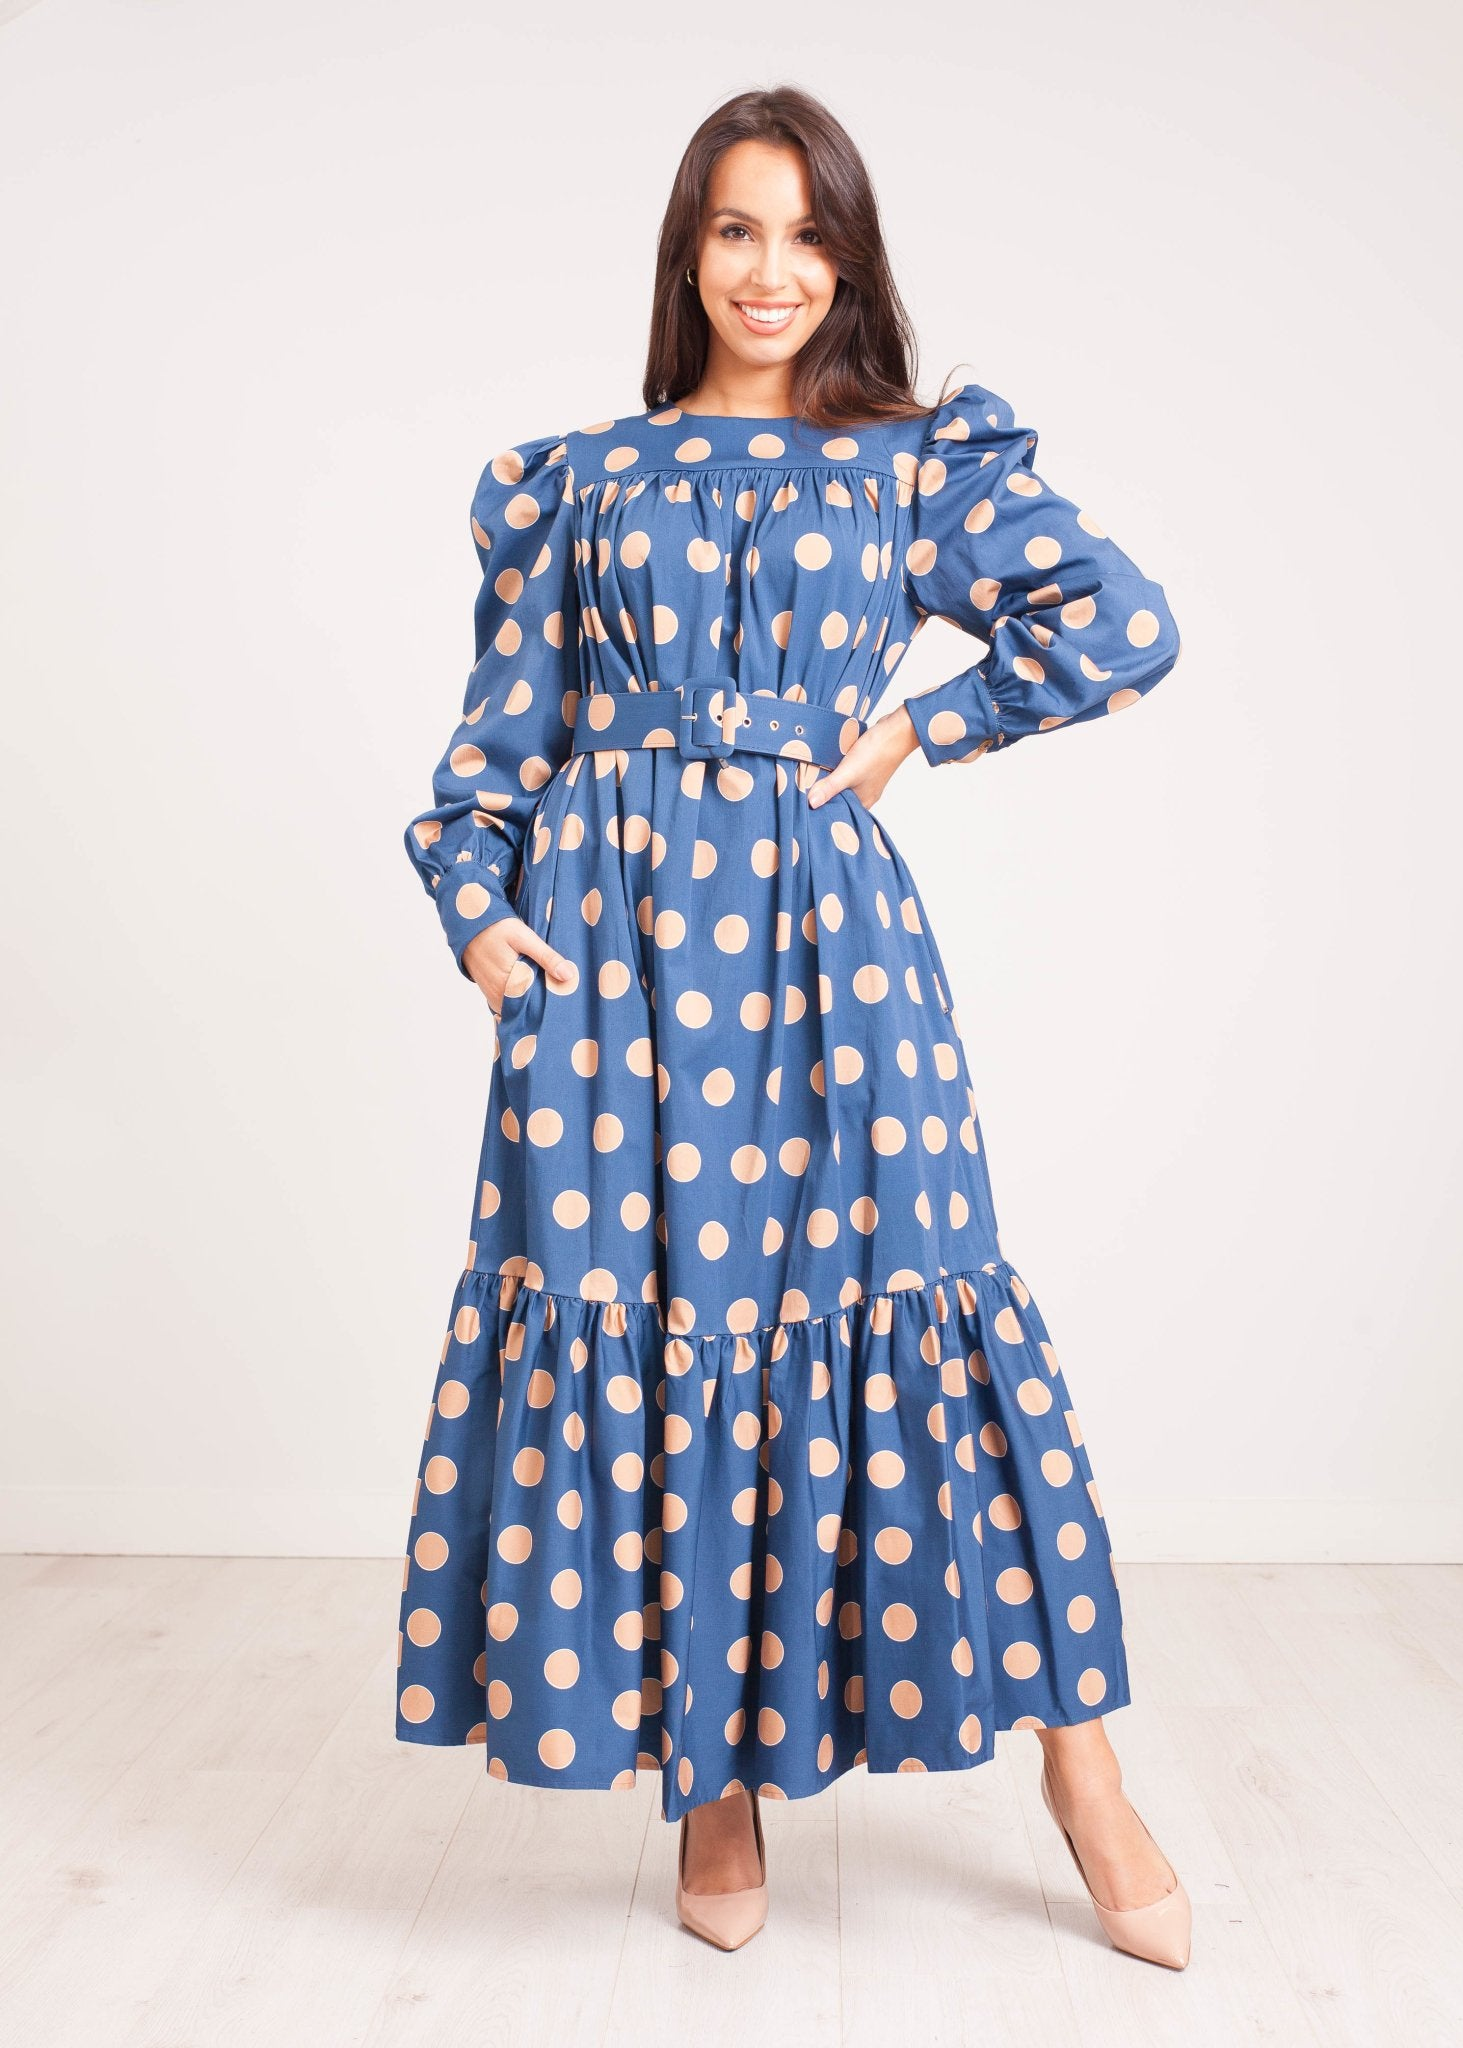 Eva Midi Dress in Blue Polka Dot - The Walk in Wardrobe